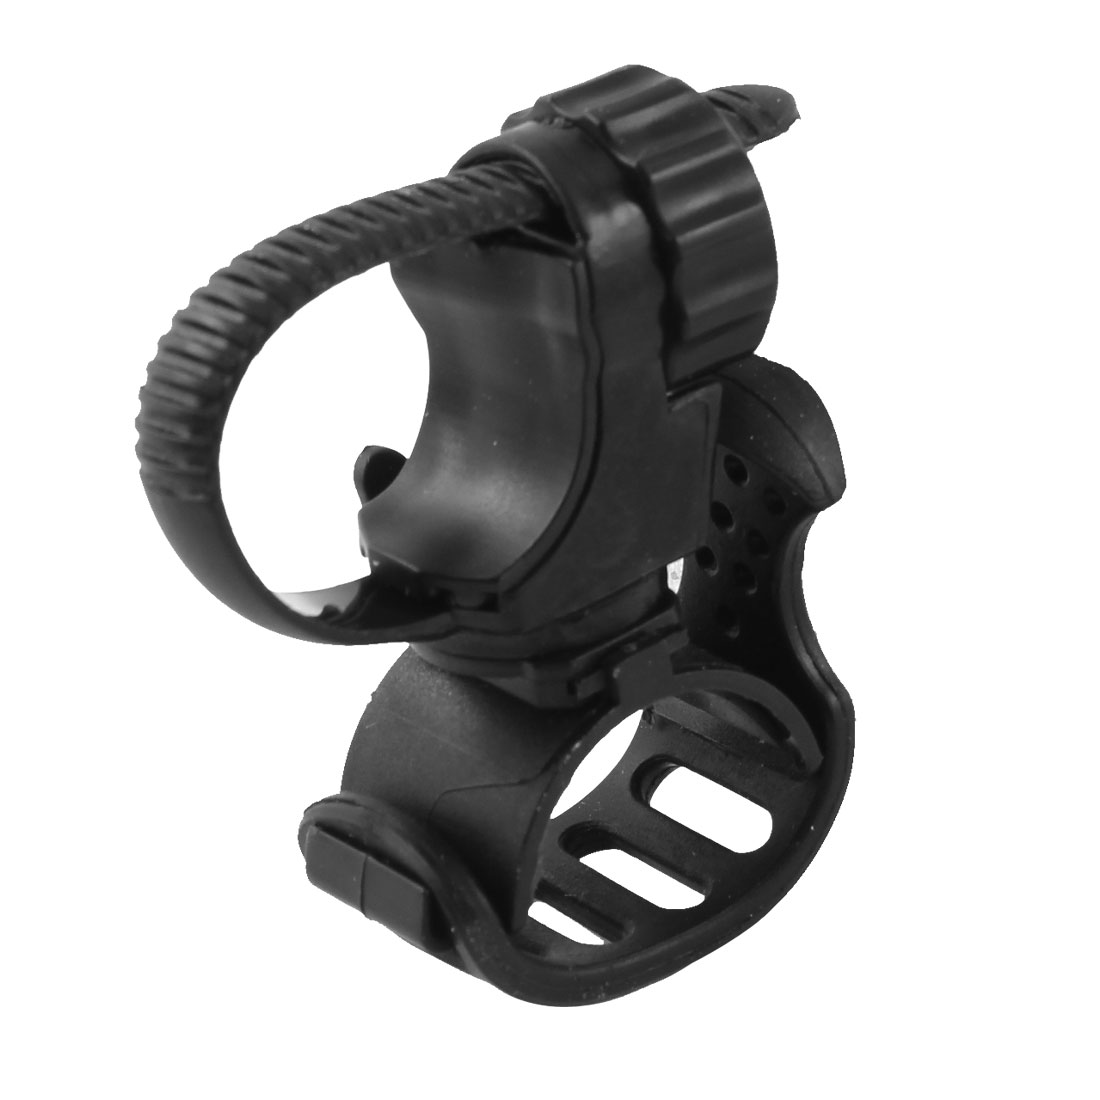 Bicycle Bike LED Flashlight Adjustable Handle Bar Mount Holder Clamp Clip Grip Bracket Black